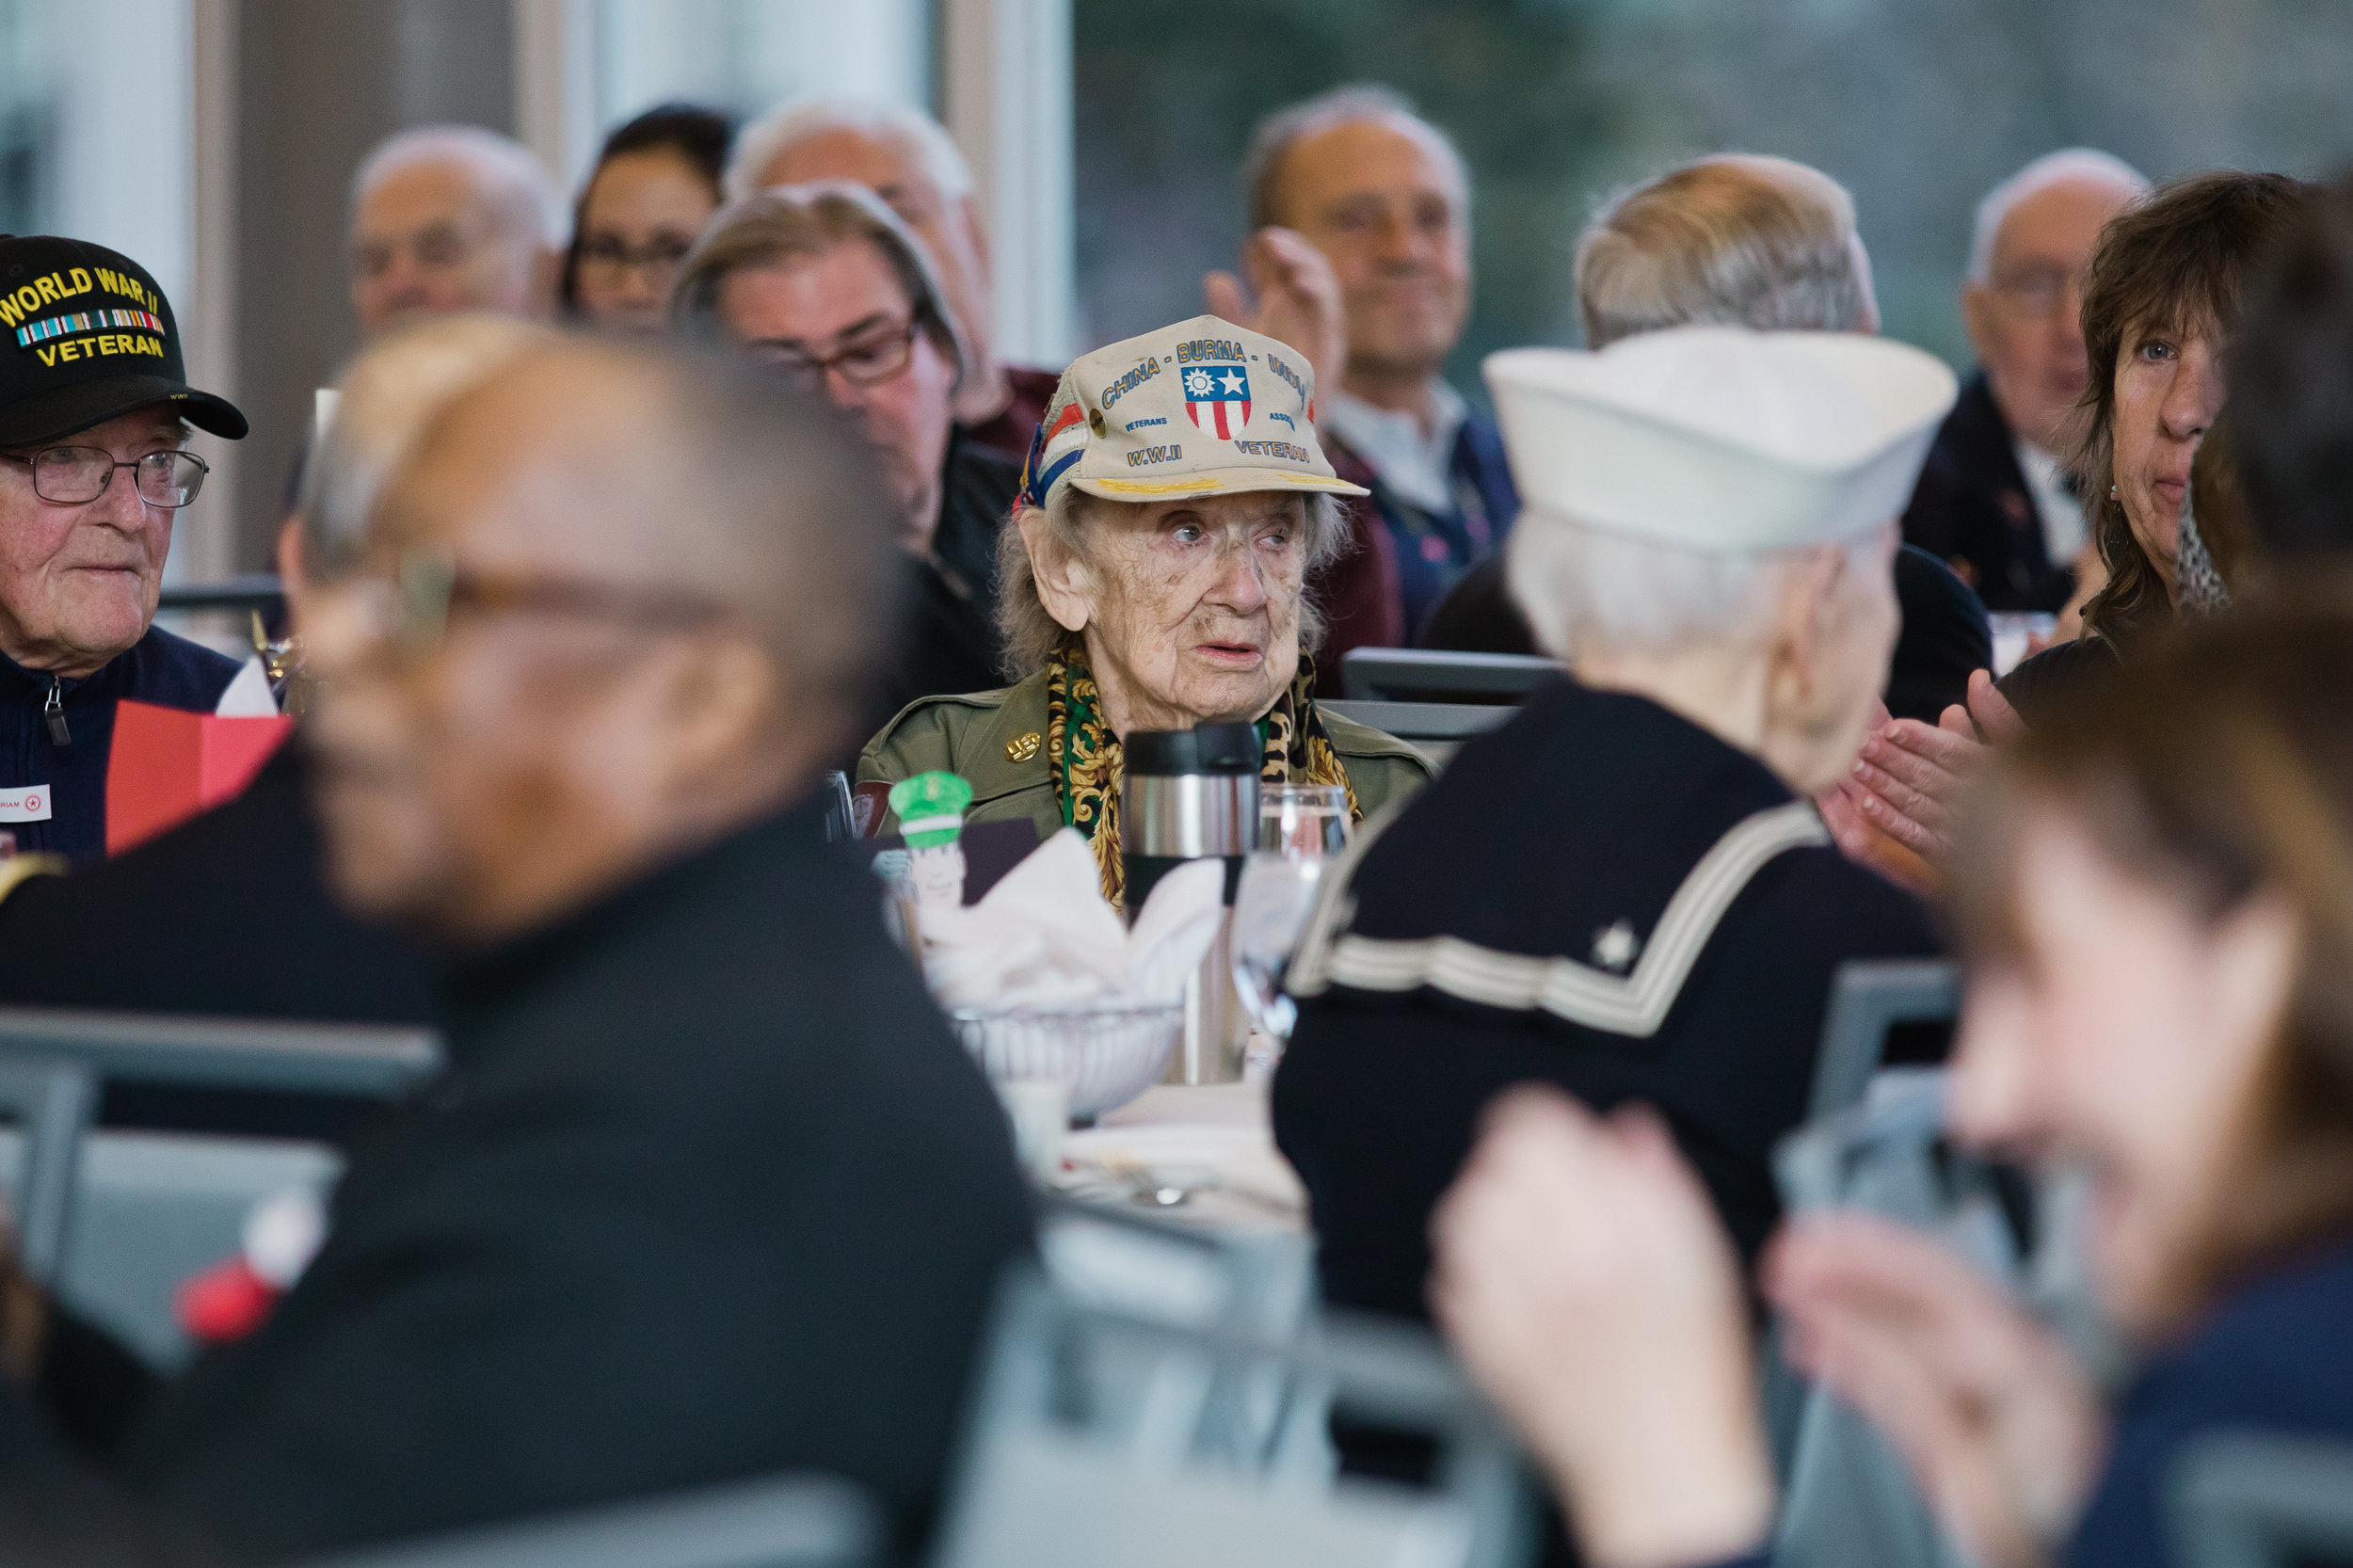 Veterans Day Breakfast - Underwrite the attendance of five veterans as we honor them at our annual Veterans Day Breakfast.$50+